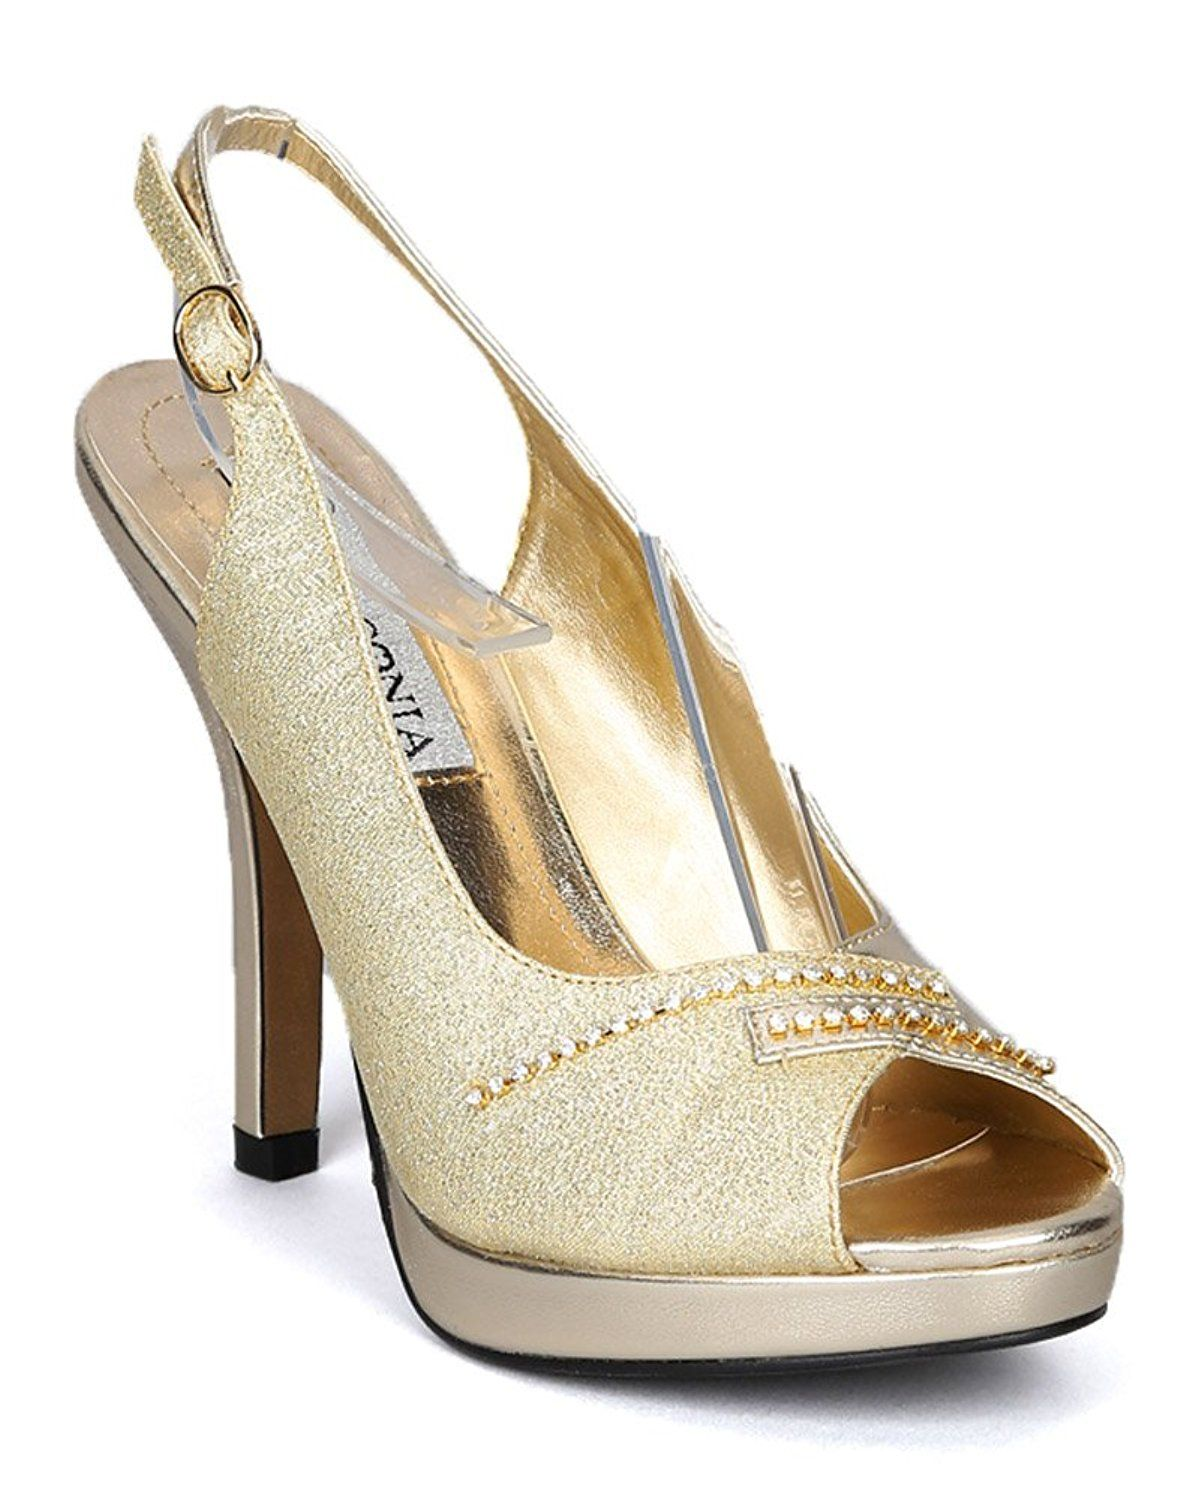 615e61a73b5ae Lasonia S4768 Peep Toe Metallic Glitter Crystal Slingback Buckle Platform  Sandal - Gold Metallic Glitter >>> Check out this great product.